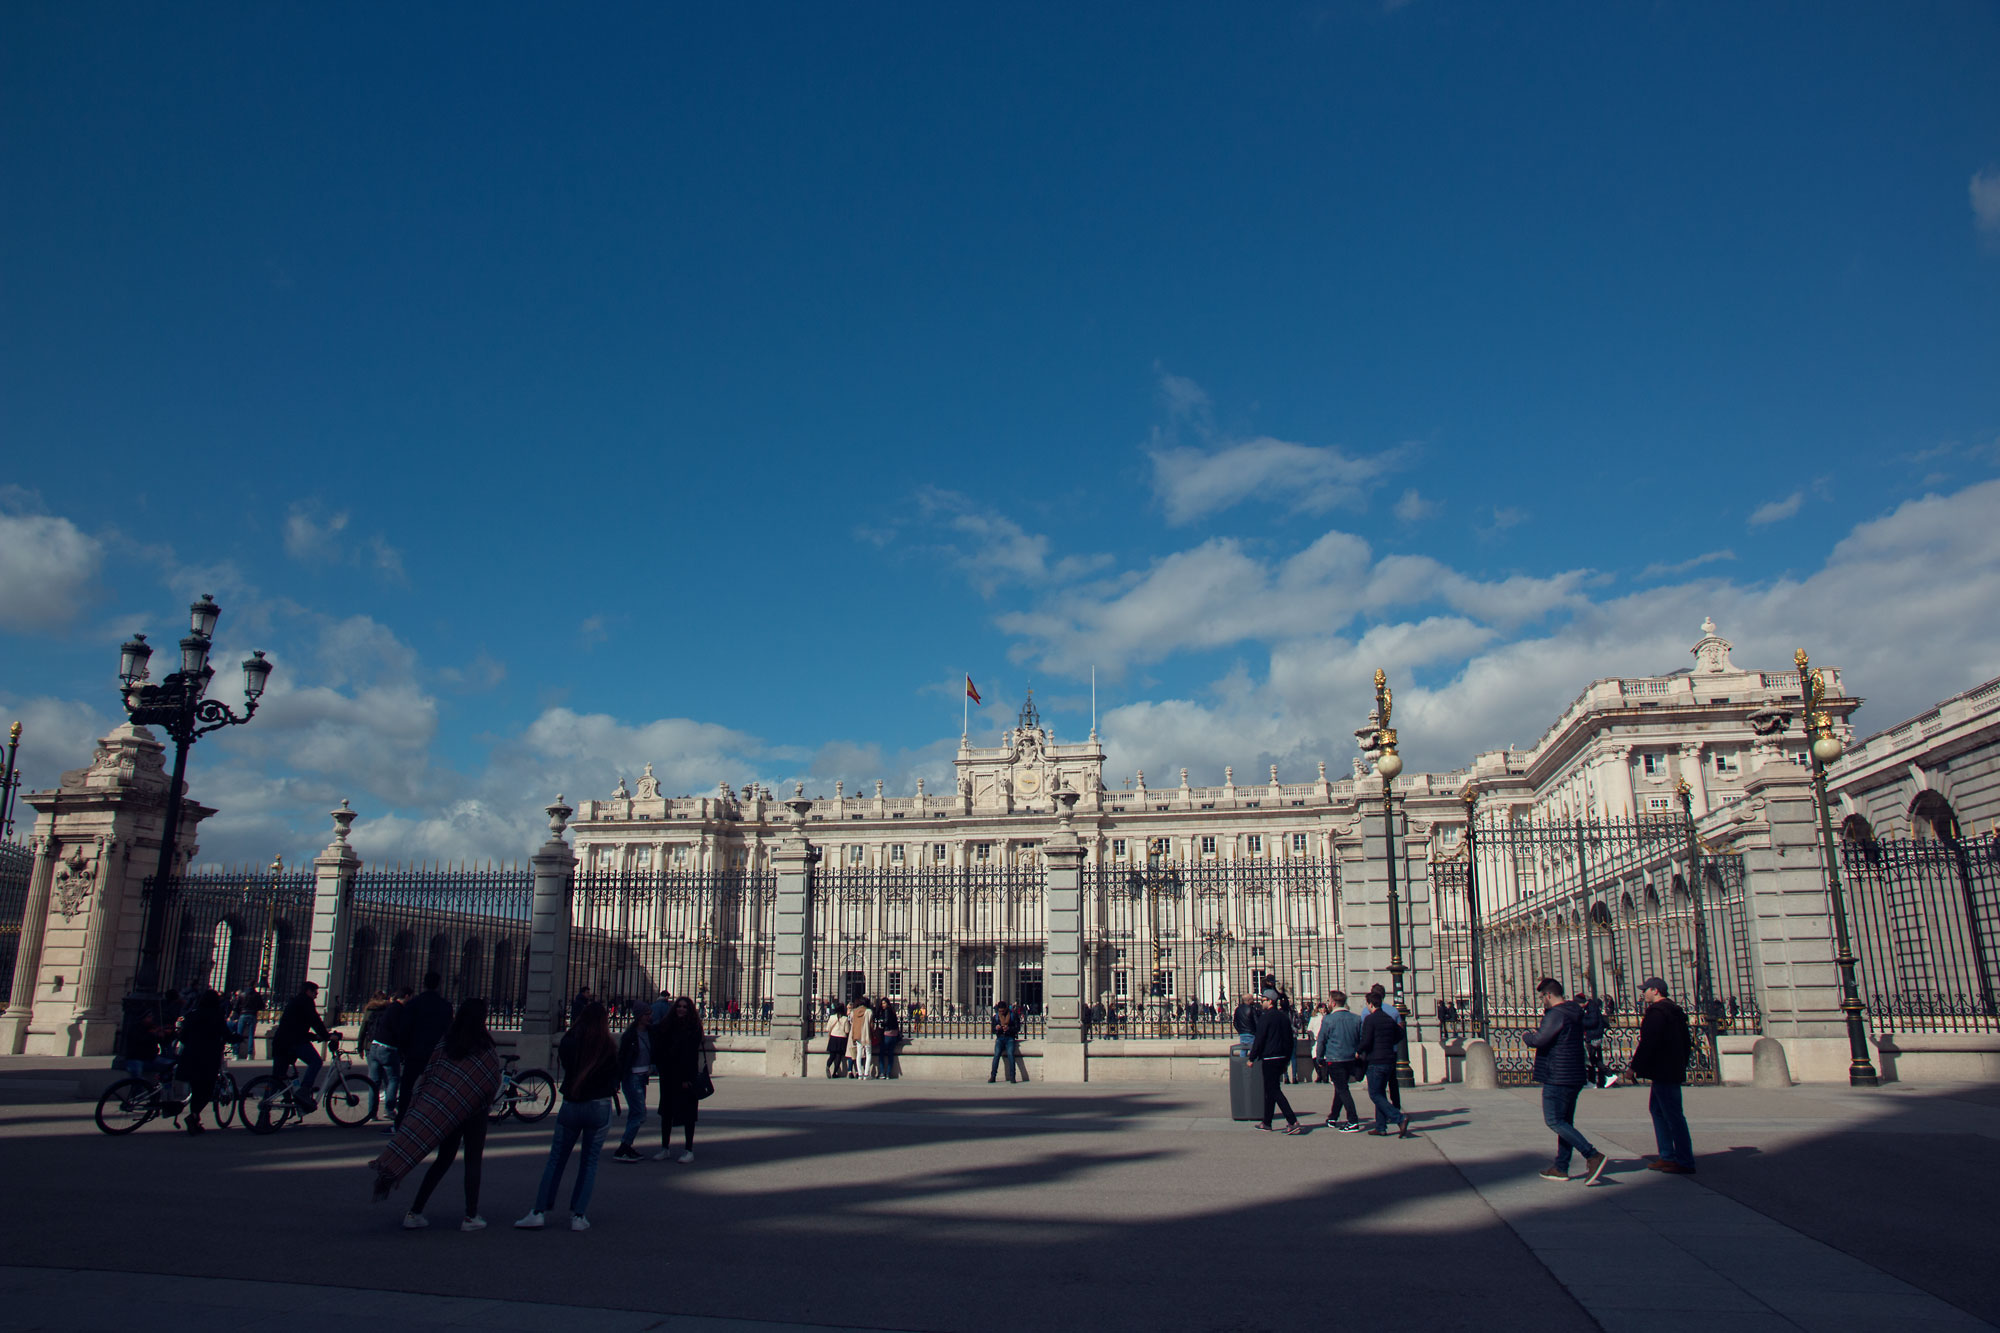 Royal Palace, Madrid - Looks a lot like Buckingham Palace!